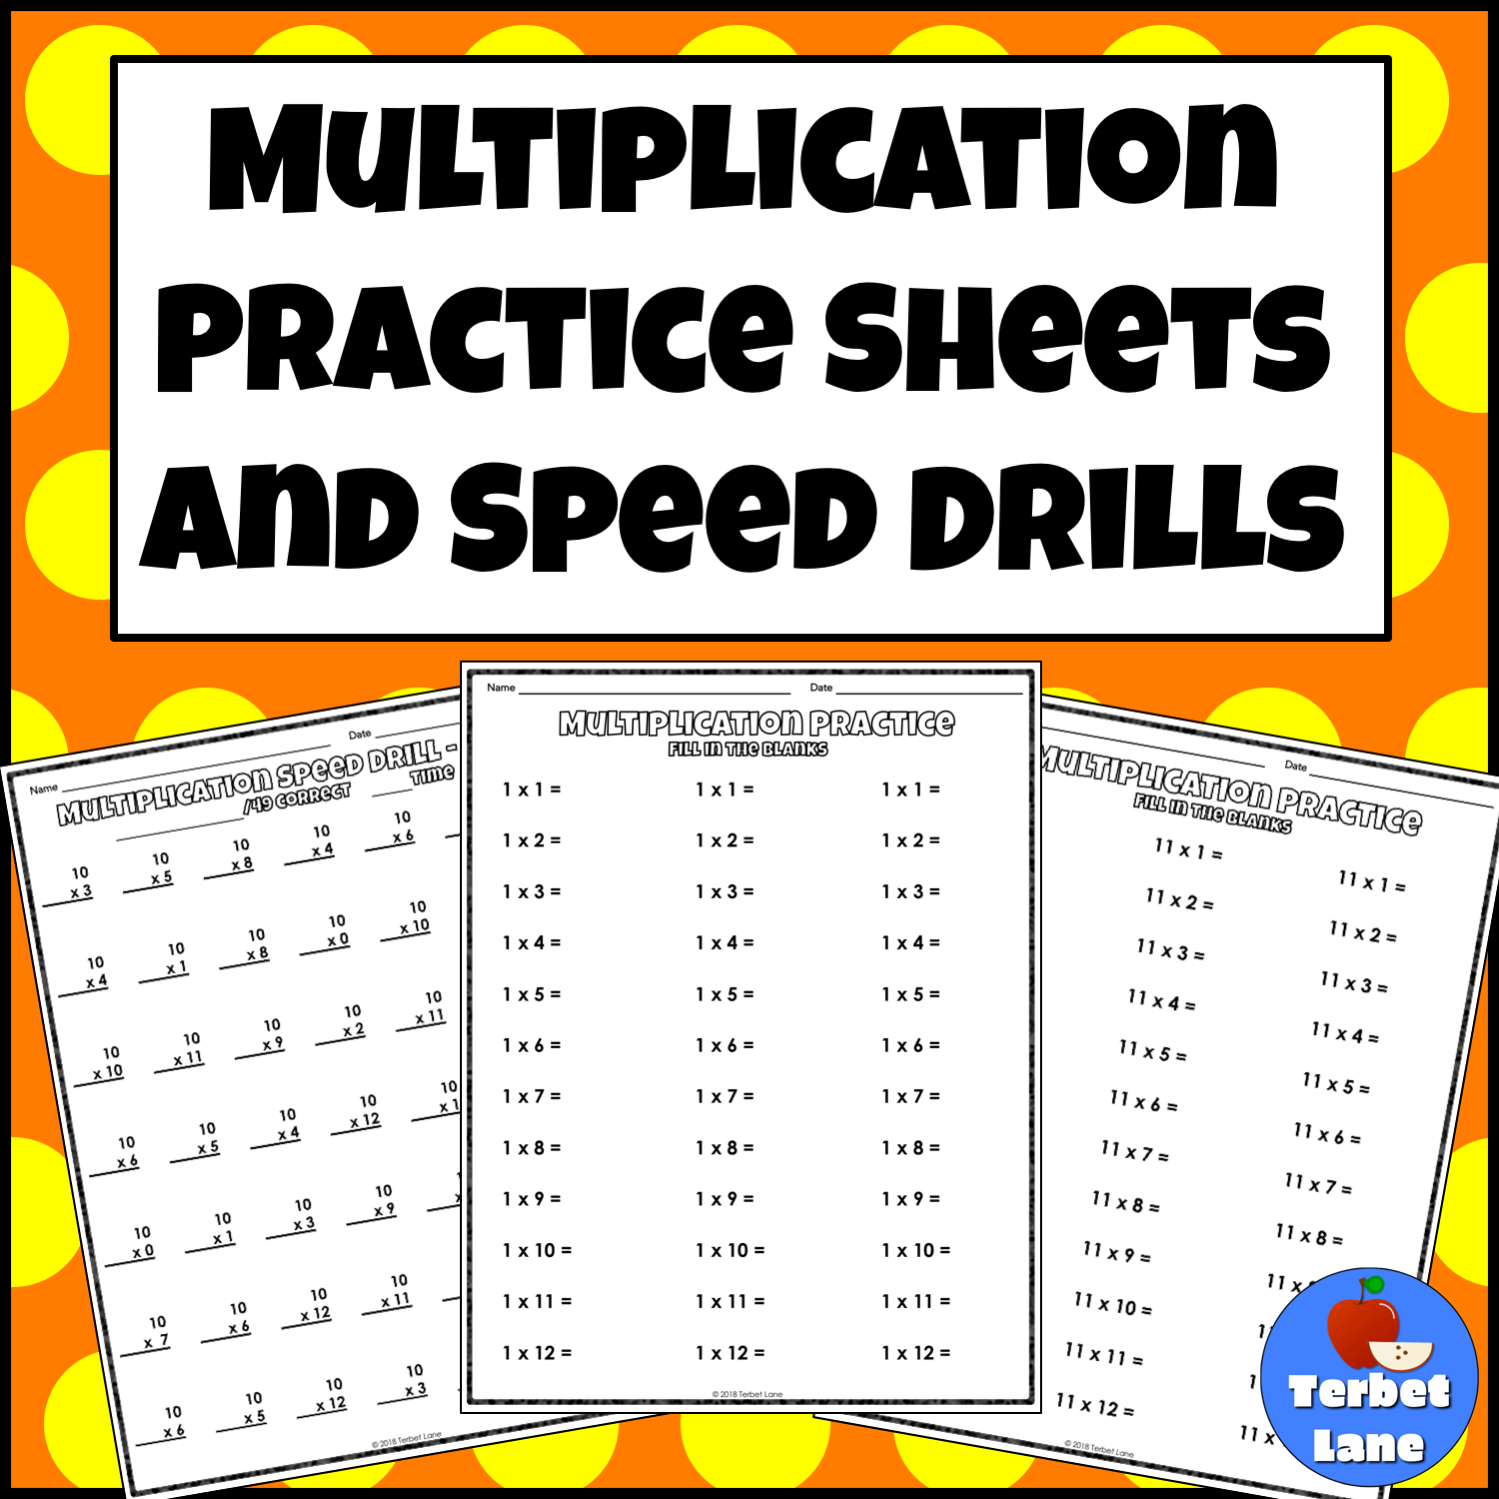 Multiplication Practice Sheets And Speed Drills From